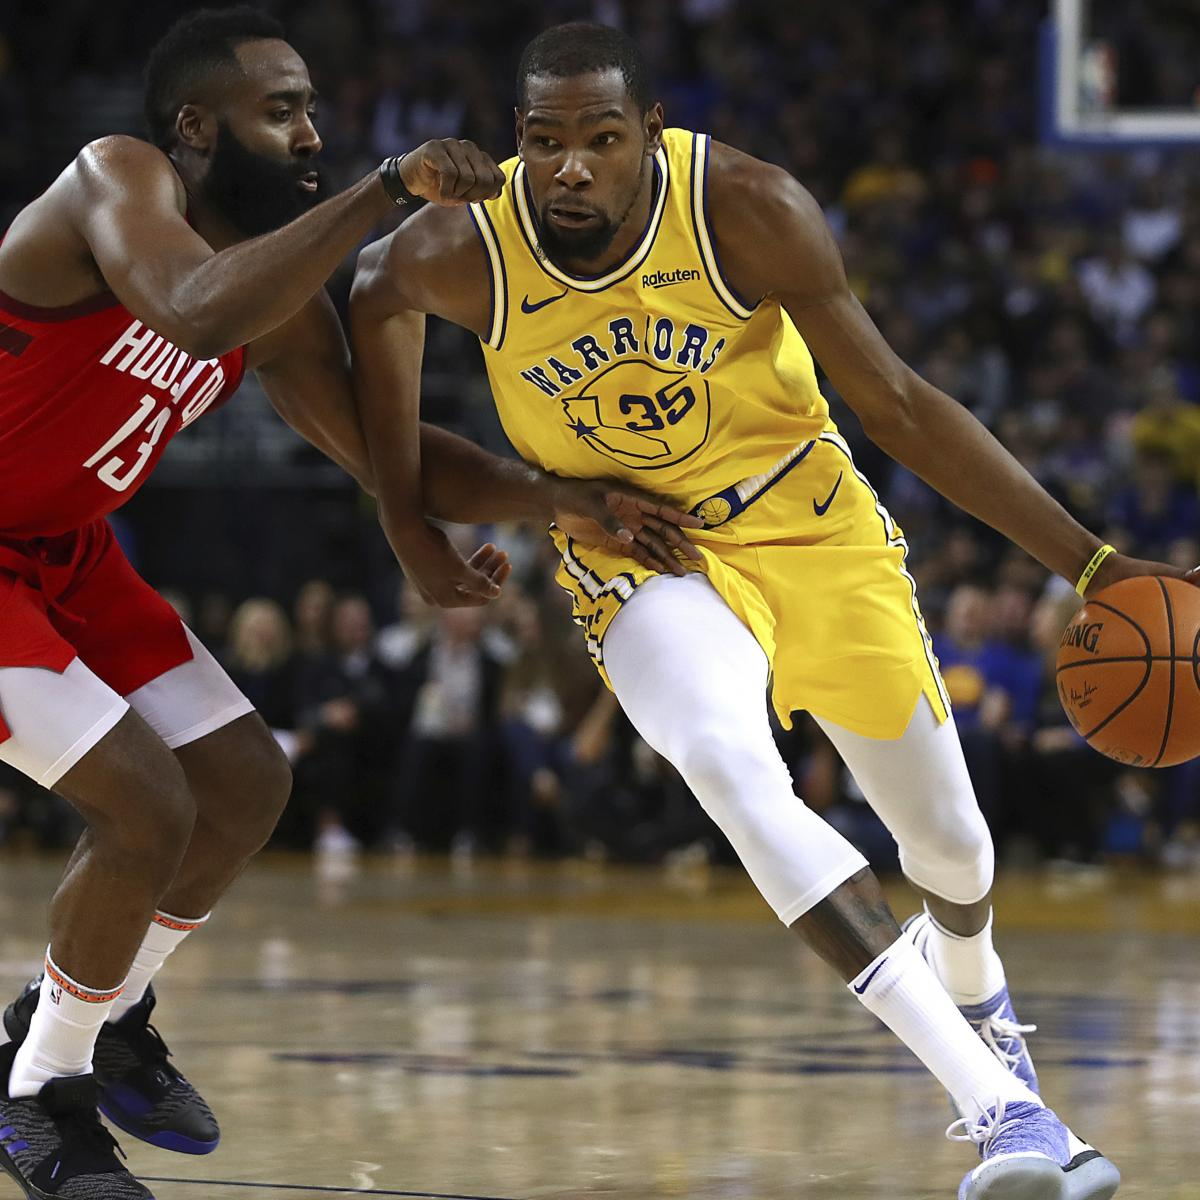 Warriors Come Out To Play Bleacher Report: Rockets Vs. Warriors L2M Report Confirms Kevin Durant Was